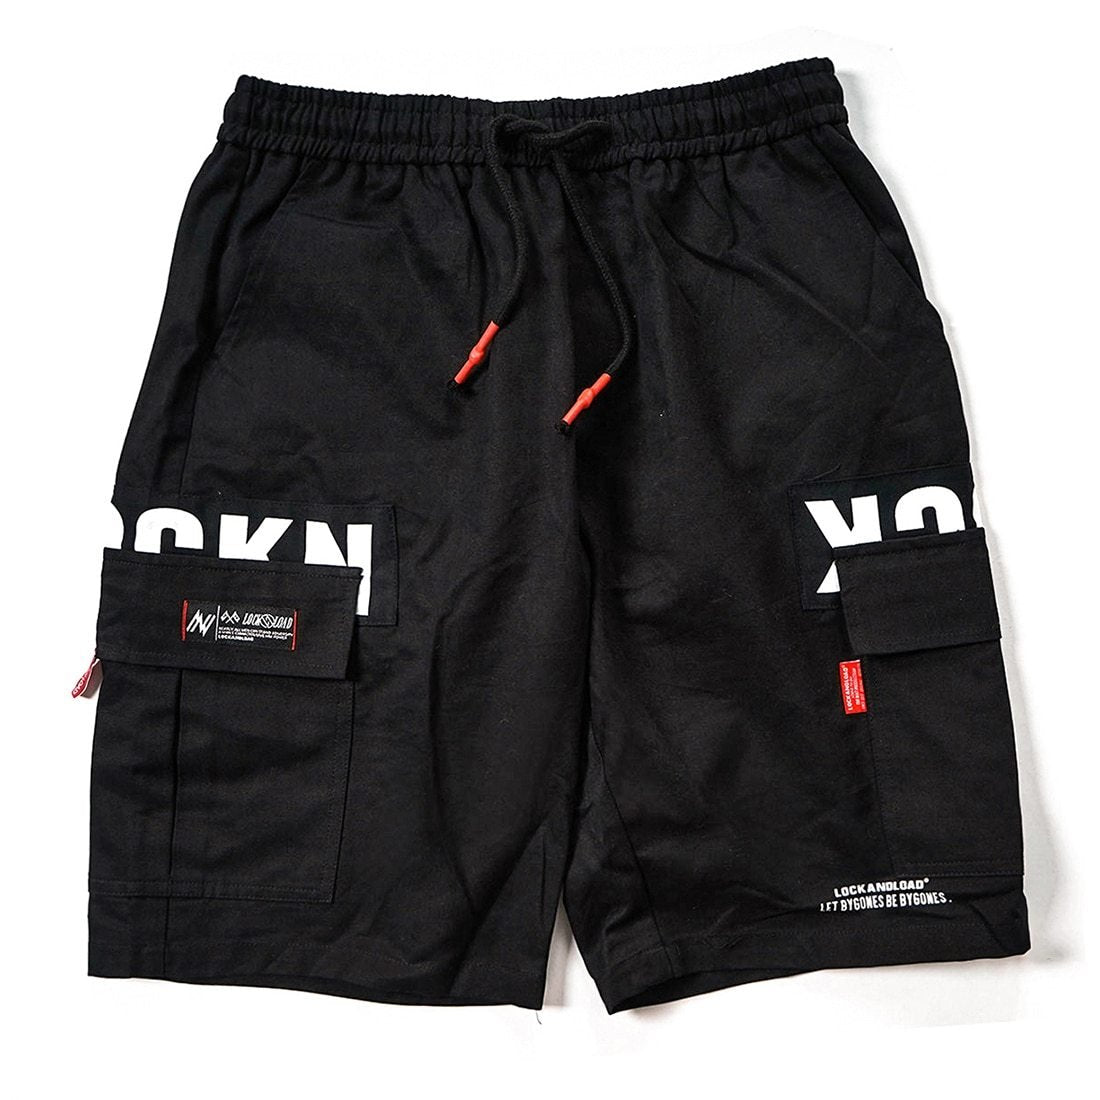 Mens Shorts for $59.95